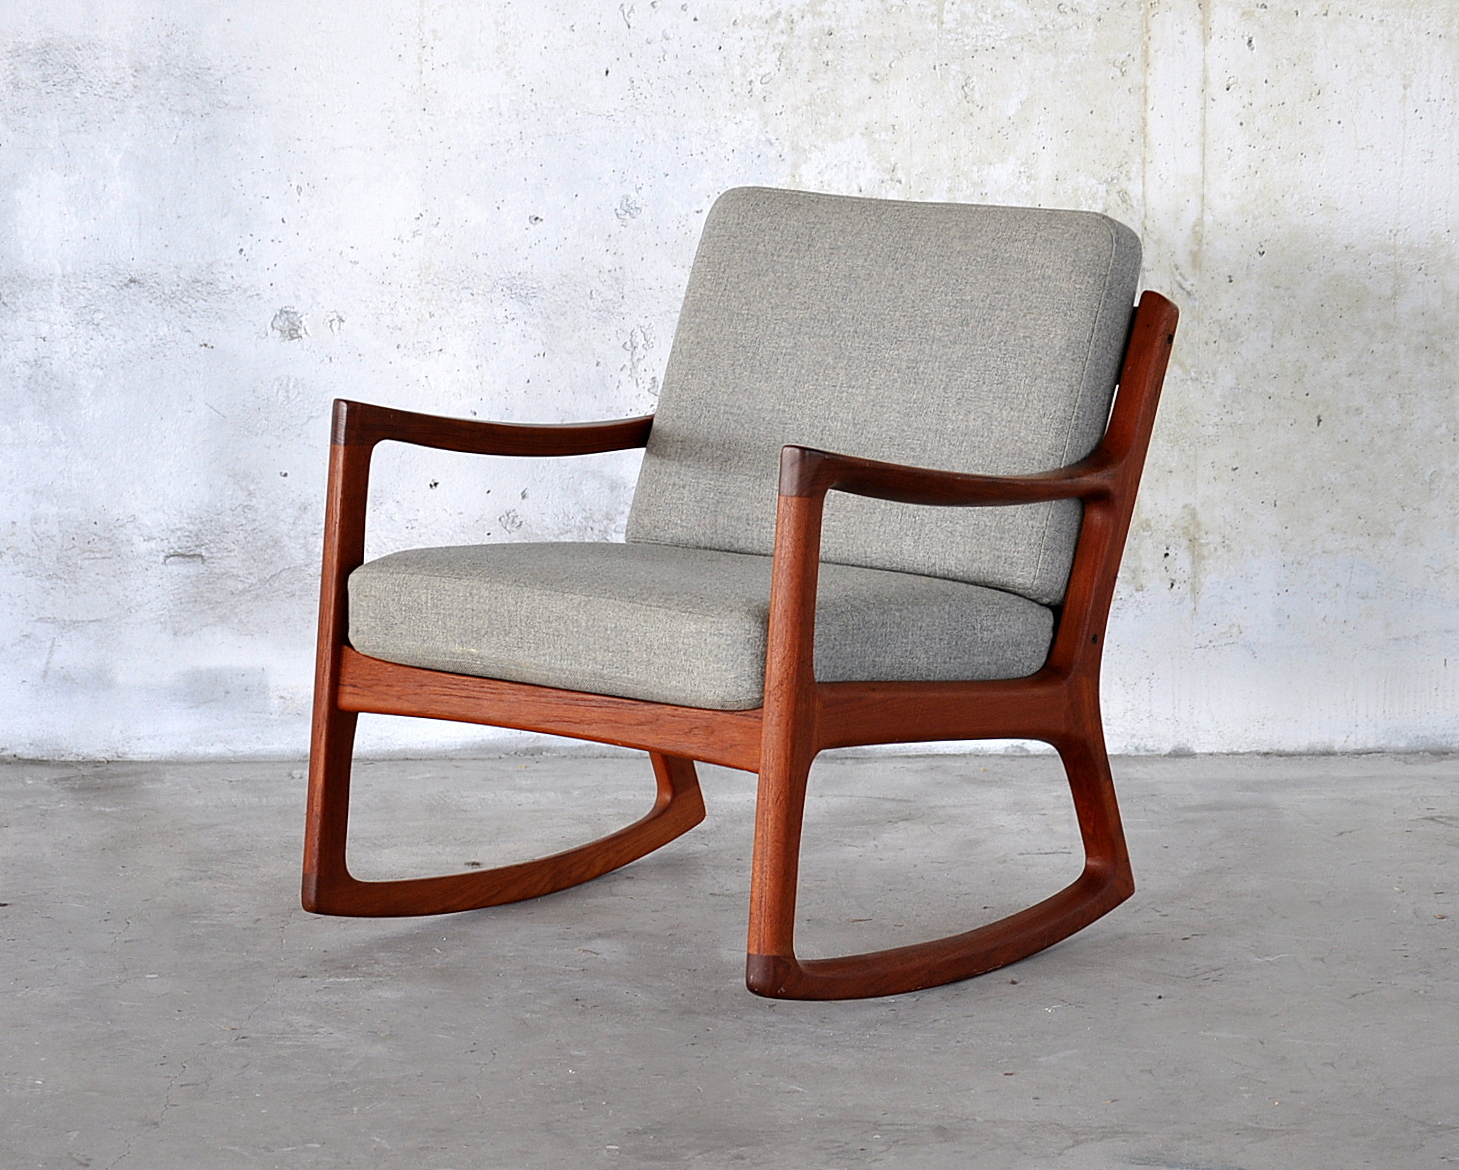 Select modern ole wanscher teak rocking chair - Rocking chair but ...